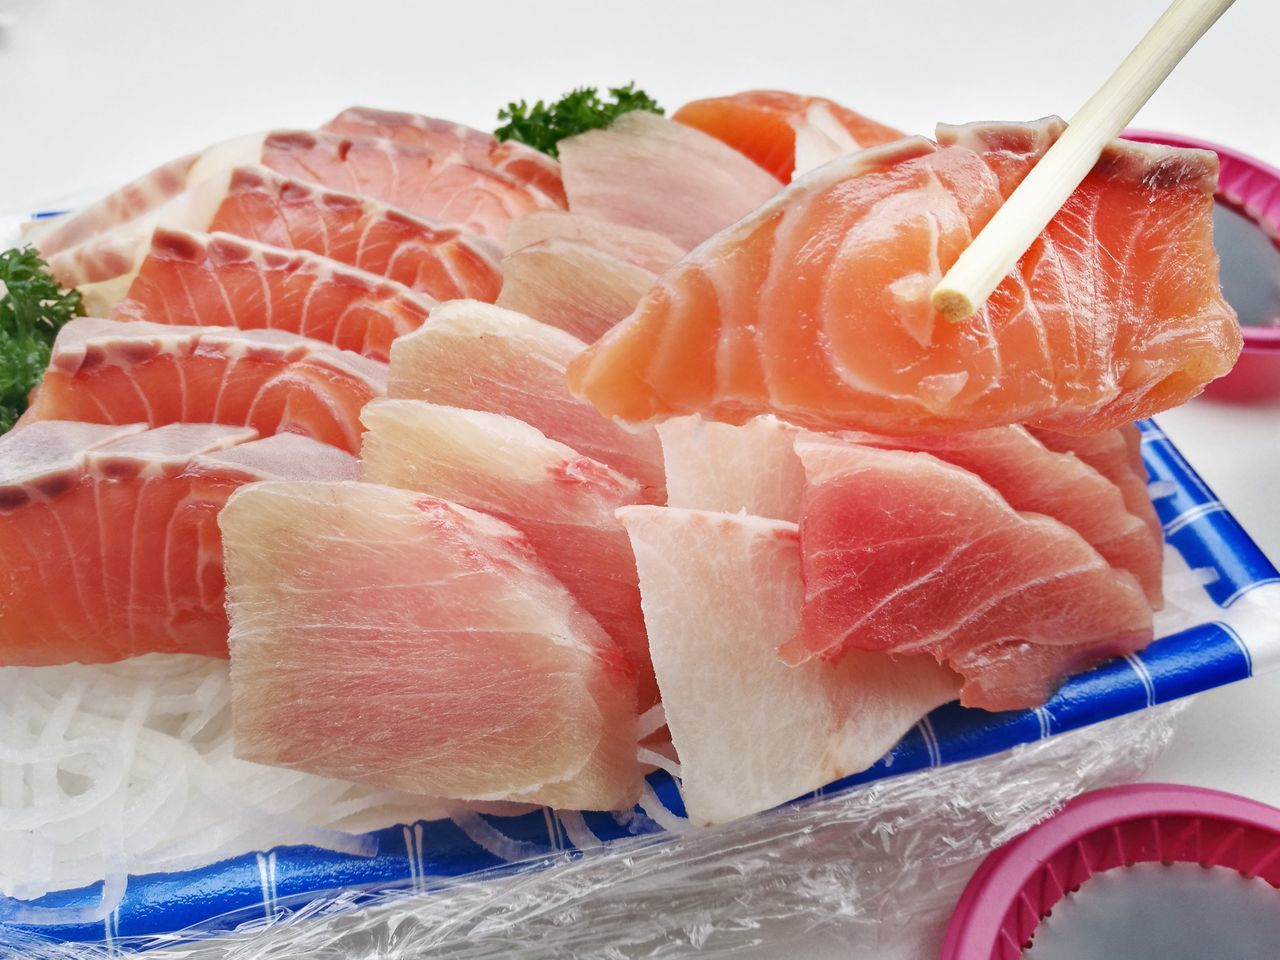 Sashimi Food Raw Food Meat Seafood Freshness Red Food And Drink Market SLICE Healthy Eating Supermarket Fillet No People Japanese Food HuaweiP9 Foodphotography Delicious FreshnessFresh Eat Chopsticks Salmon Sashimi Sasimi Sashimilovers Sashimi Lunch